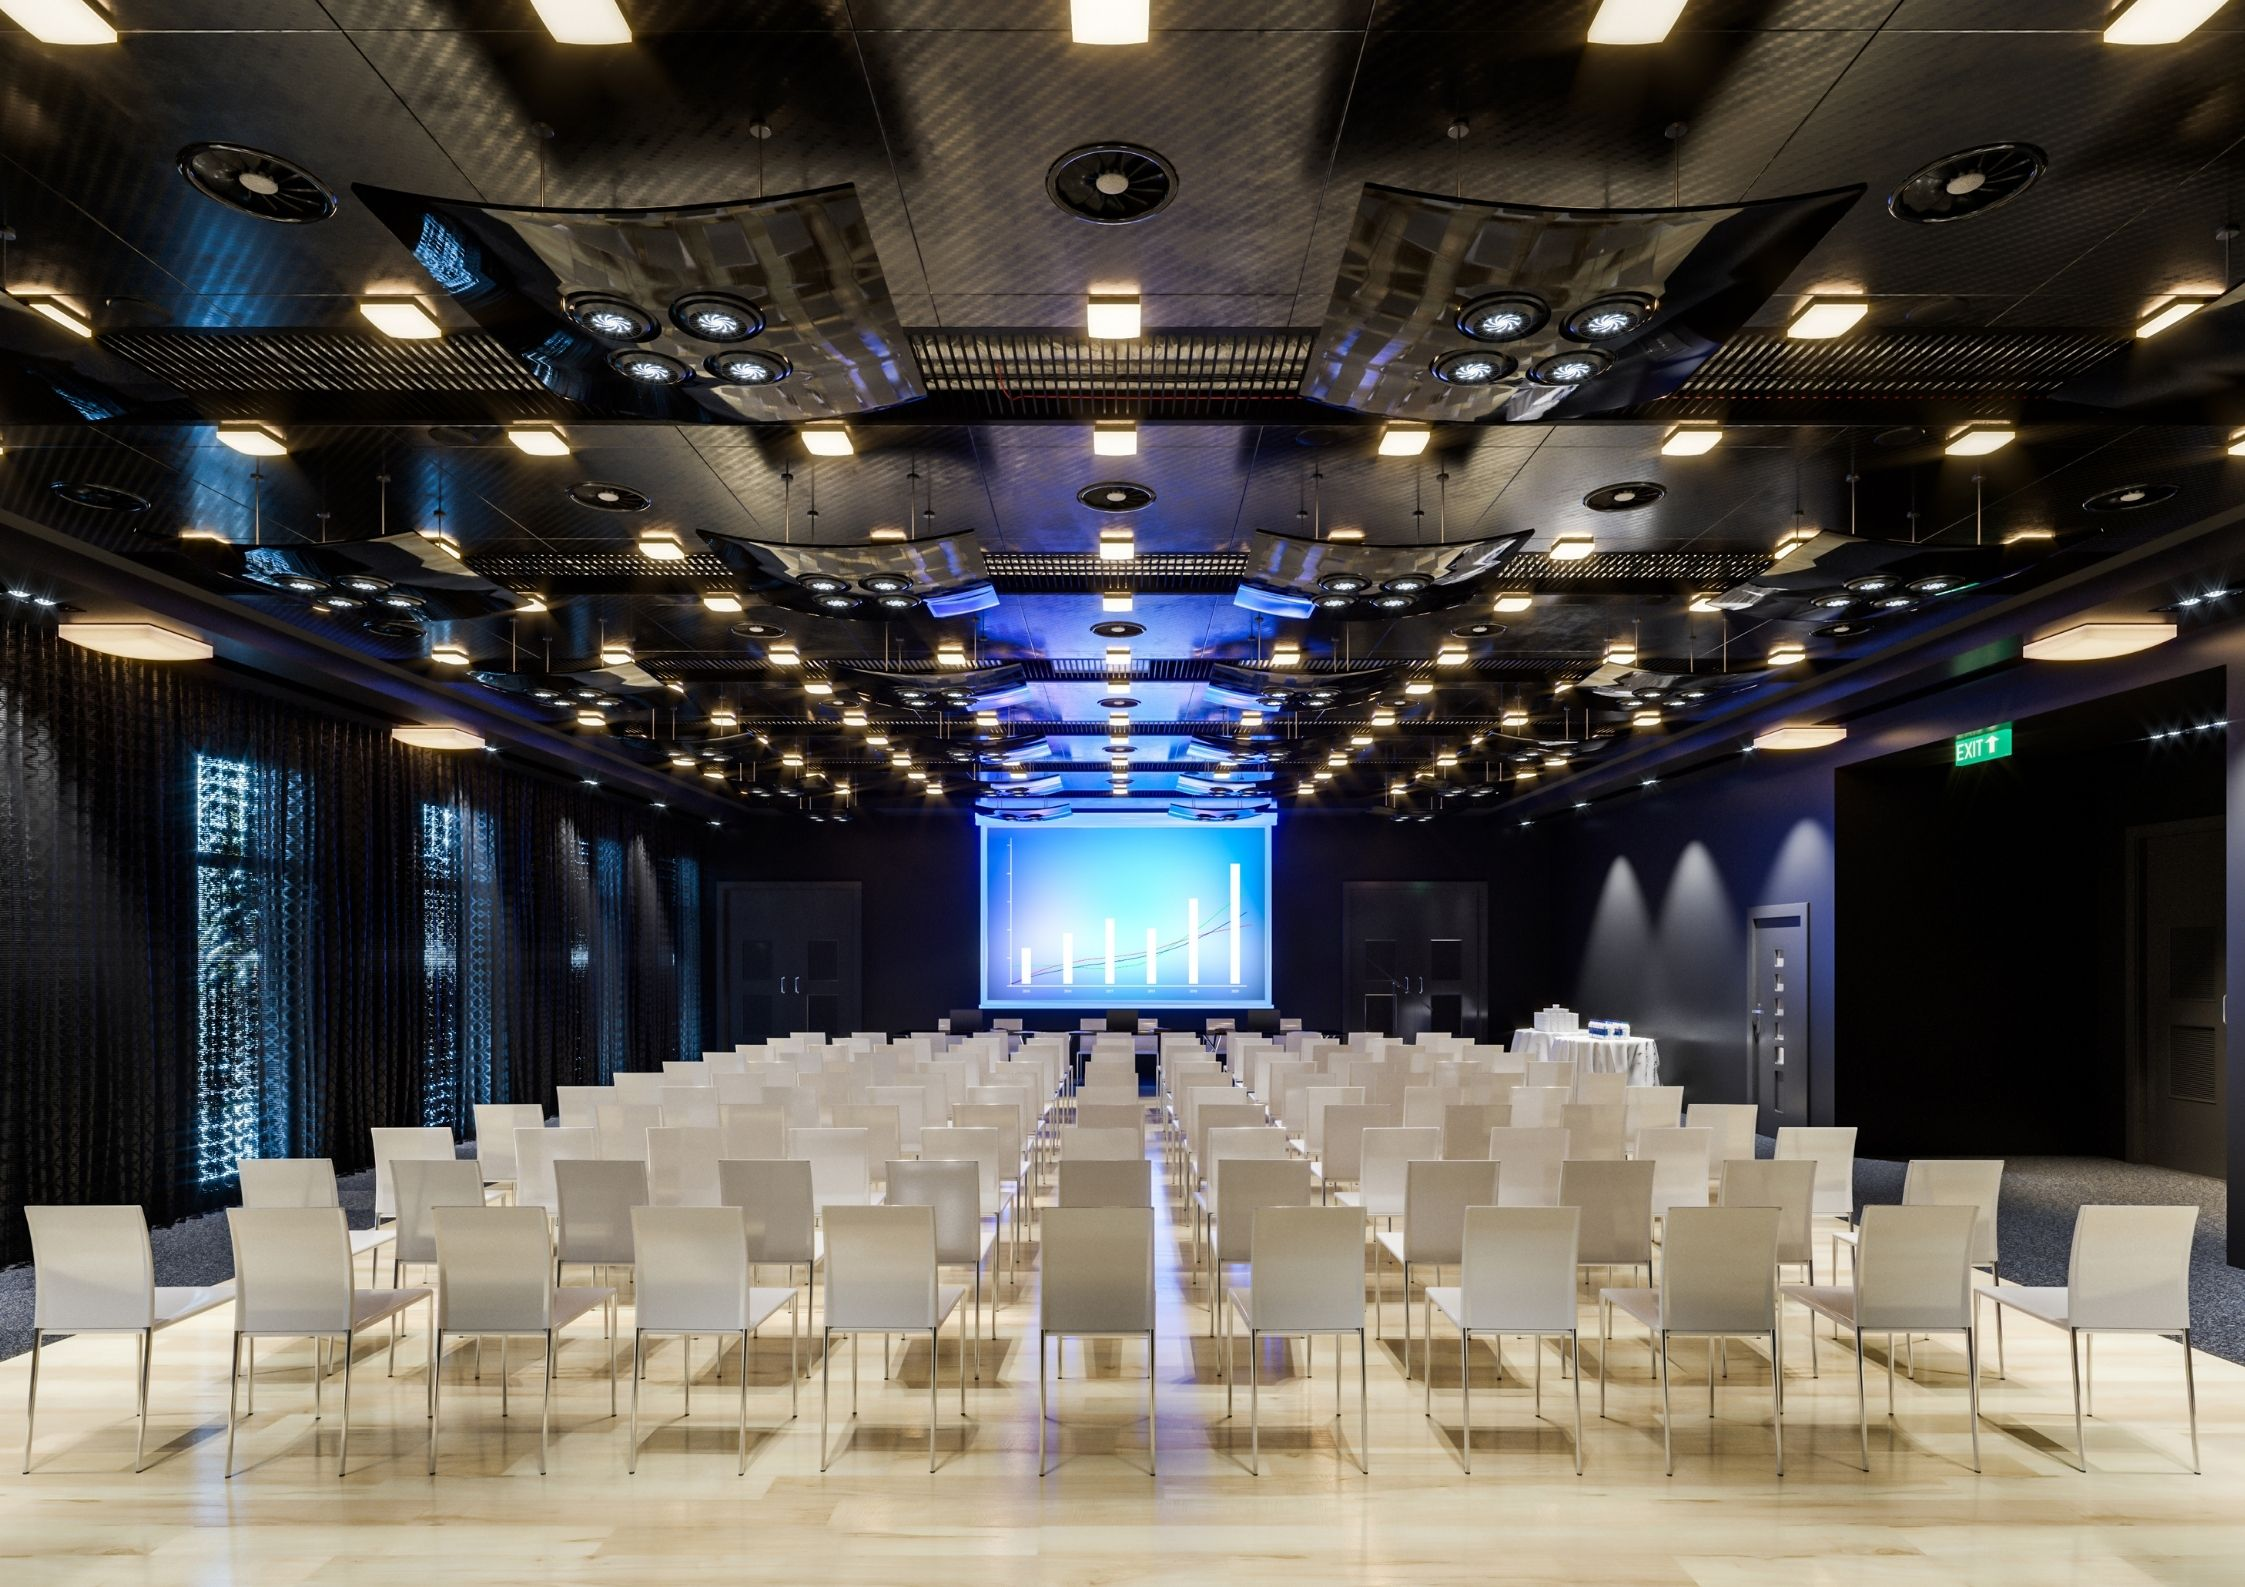 Conference room with lights, speakers, display and signal management system